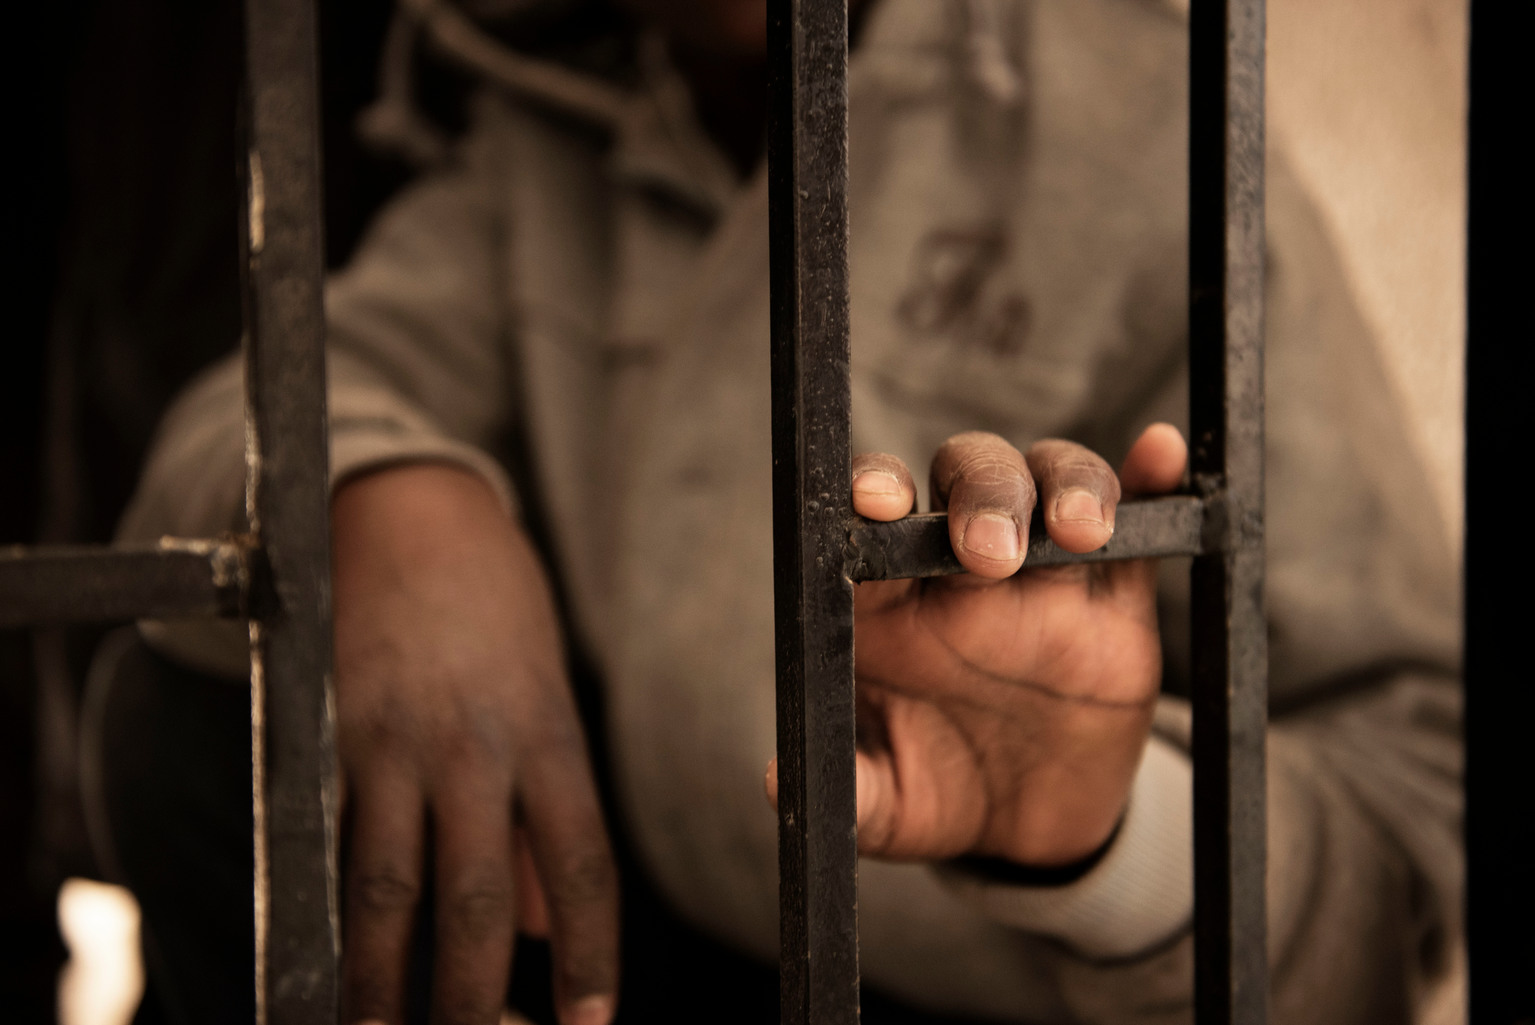 Fourteen-year-old Issaa, a migrant from Niger, rests his hand on a gate inside one of the detention centres.